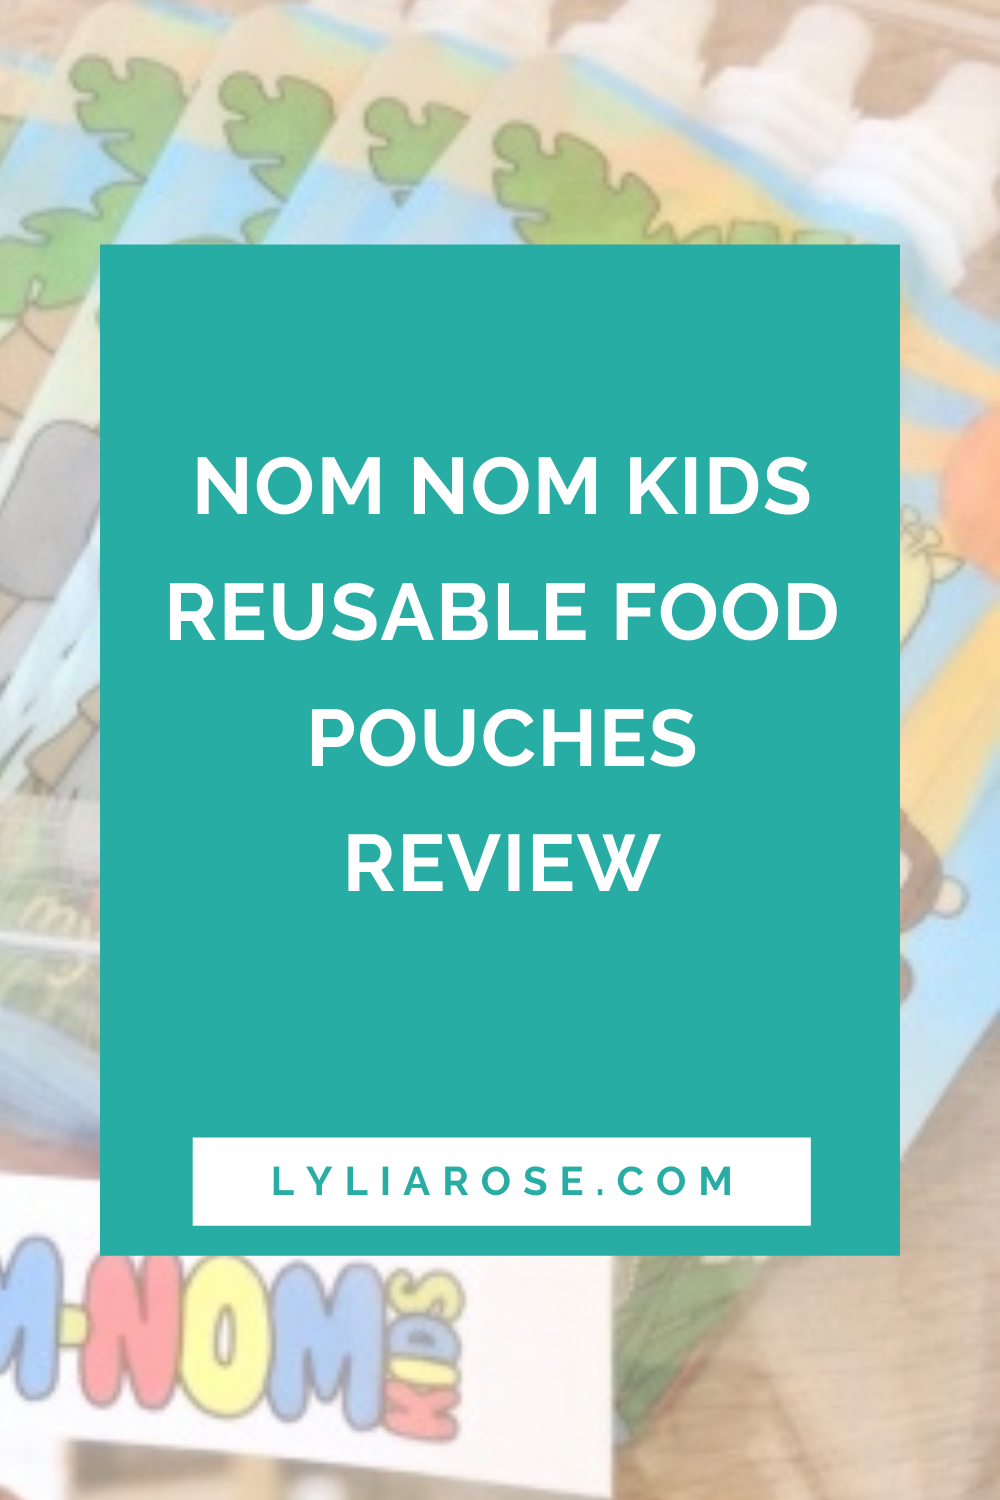 Nom Nom Kids reusable food pouches review